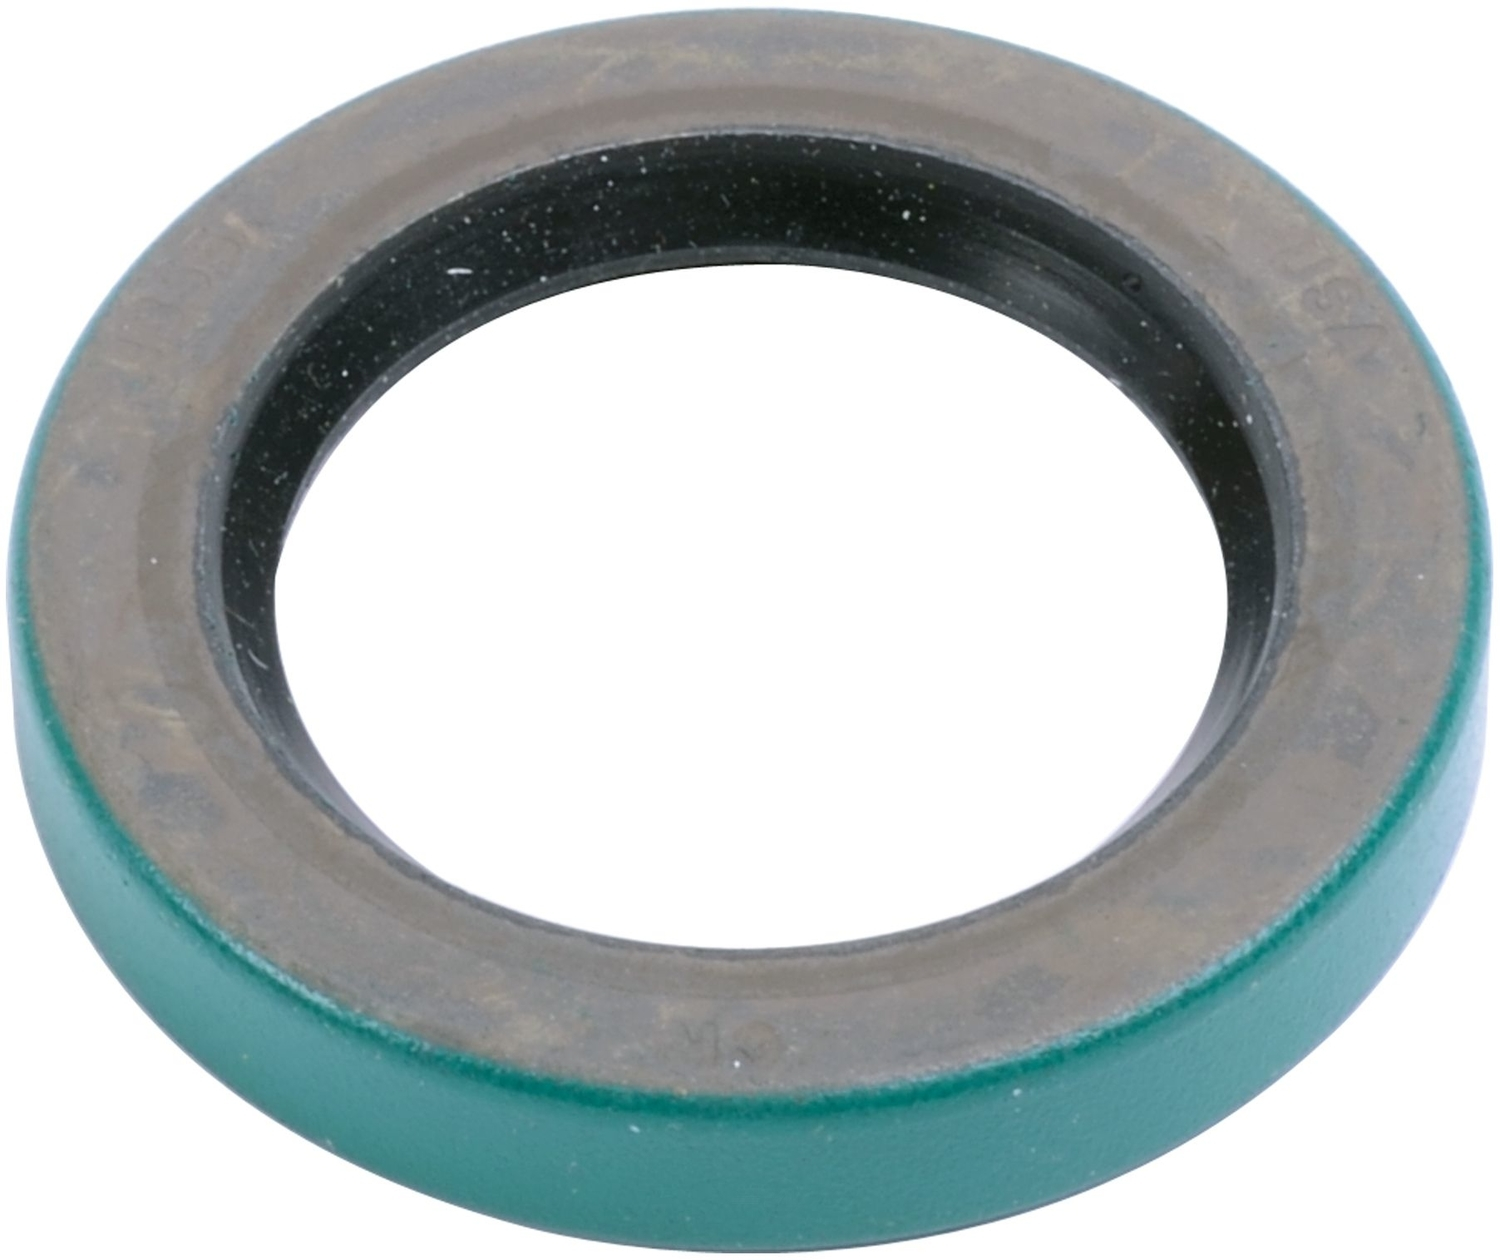 SKF (CHICAGO RAWHIDE) - Manual Trans Input Shaft Seal - SKF 13557